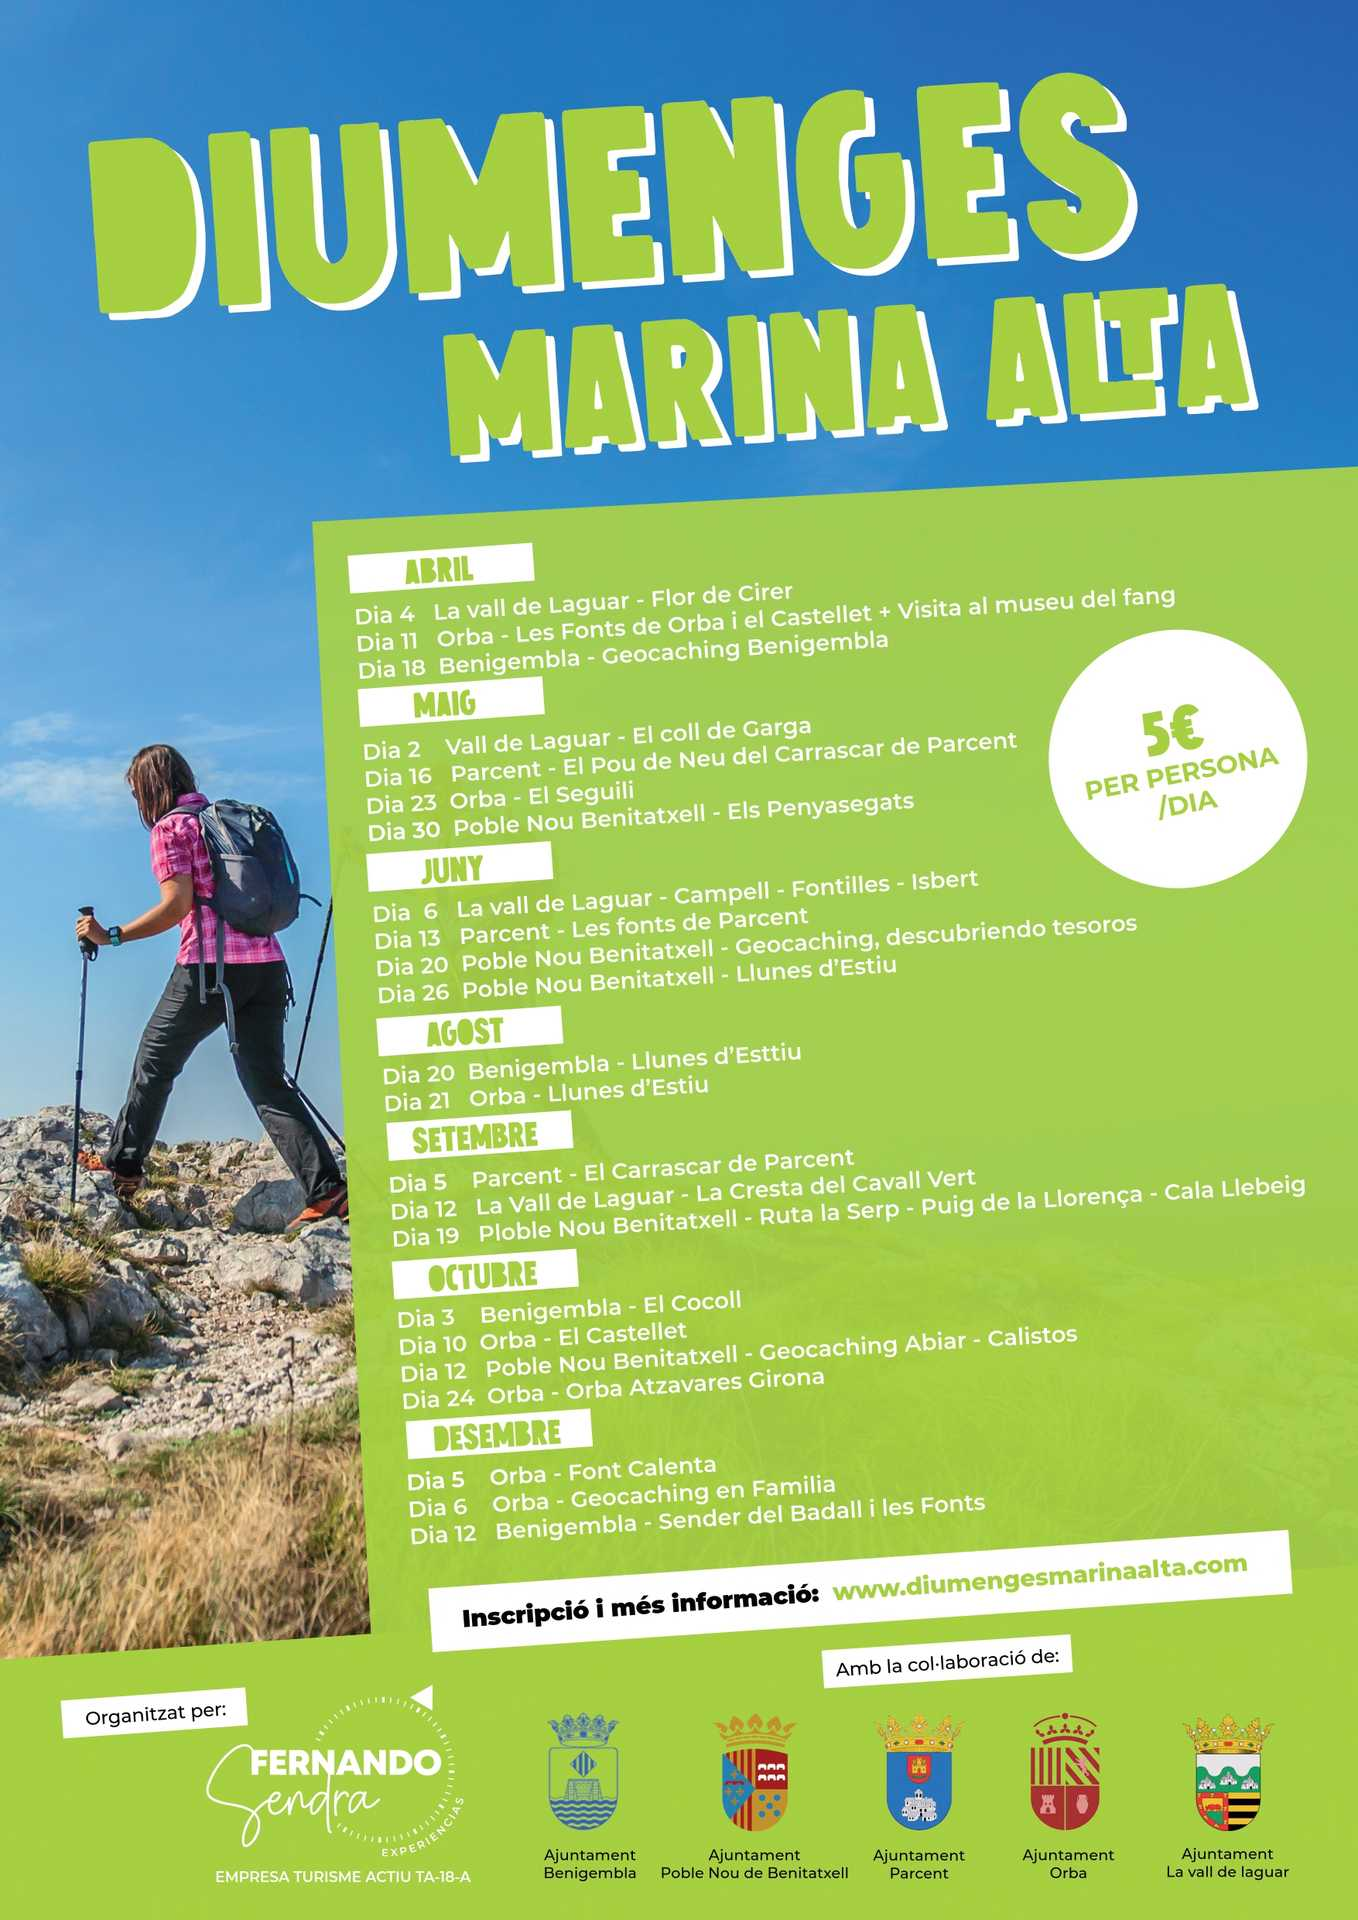 Diumenges Marina Alta - Hiking Routes